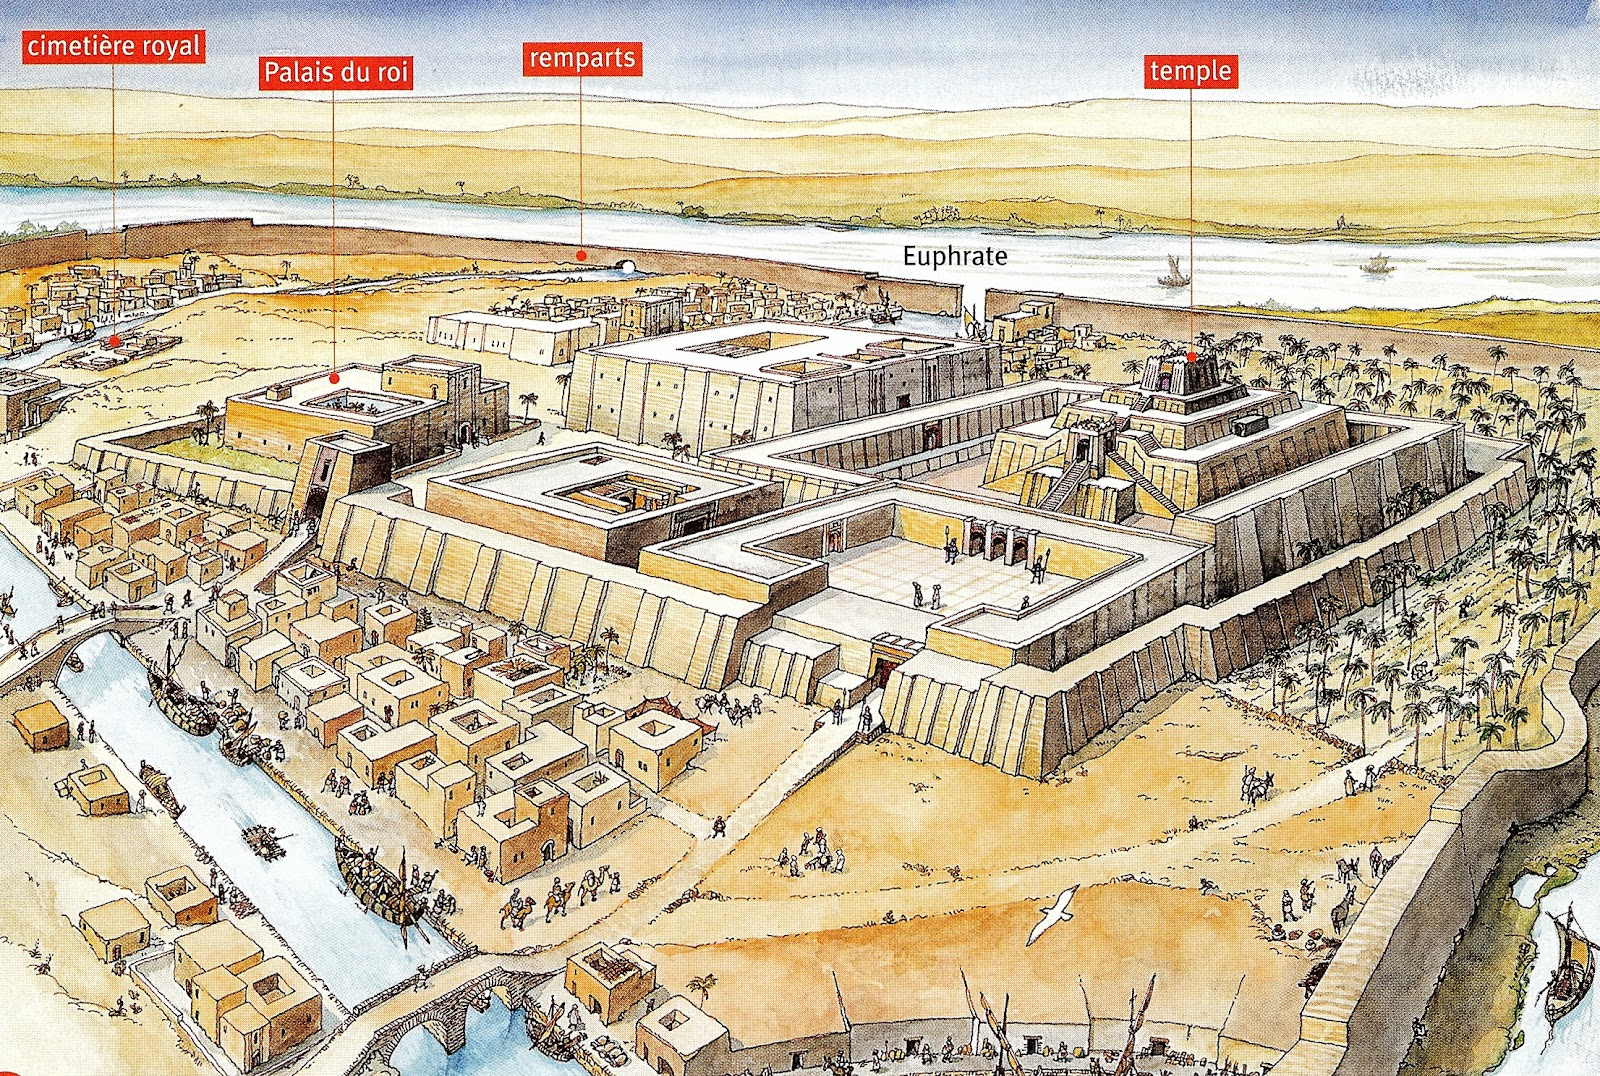 ancient egypt and mesopotamie Equinox publishing books and journals of the civilizations of ancient mesopotamia and ancient egypt conquest of mesopotamia and egypt first civilizations.